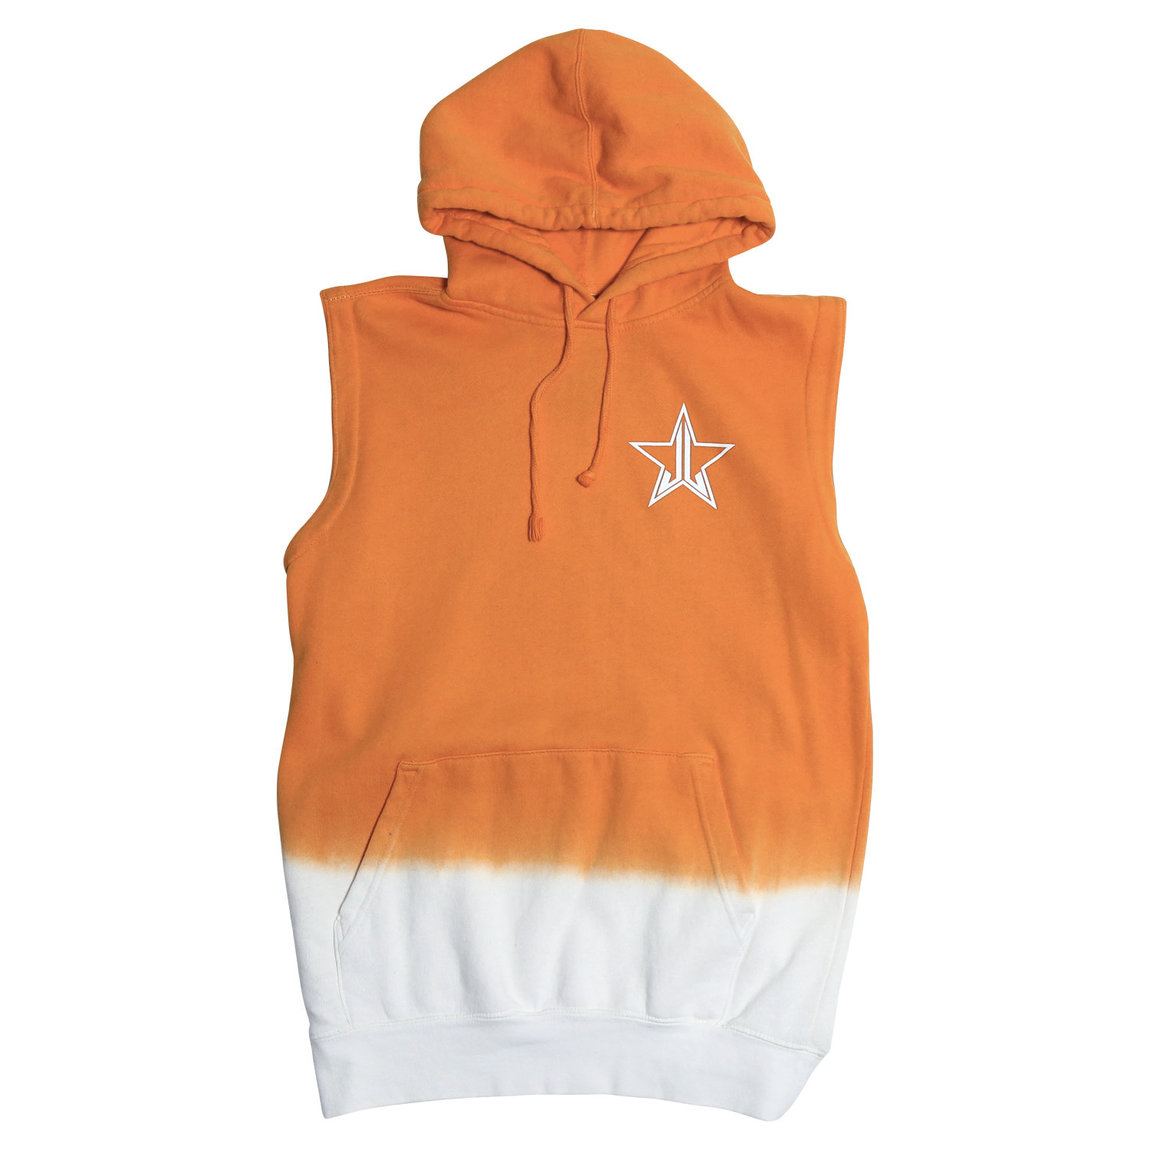 Jeffree Star Cosmetics Creamsicle Sleeveless Hoodie Small product smear.